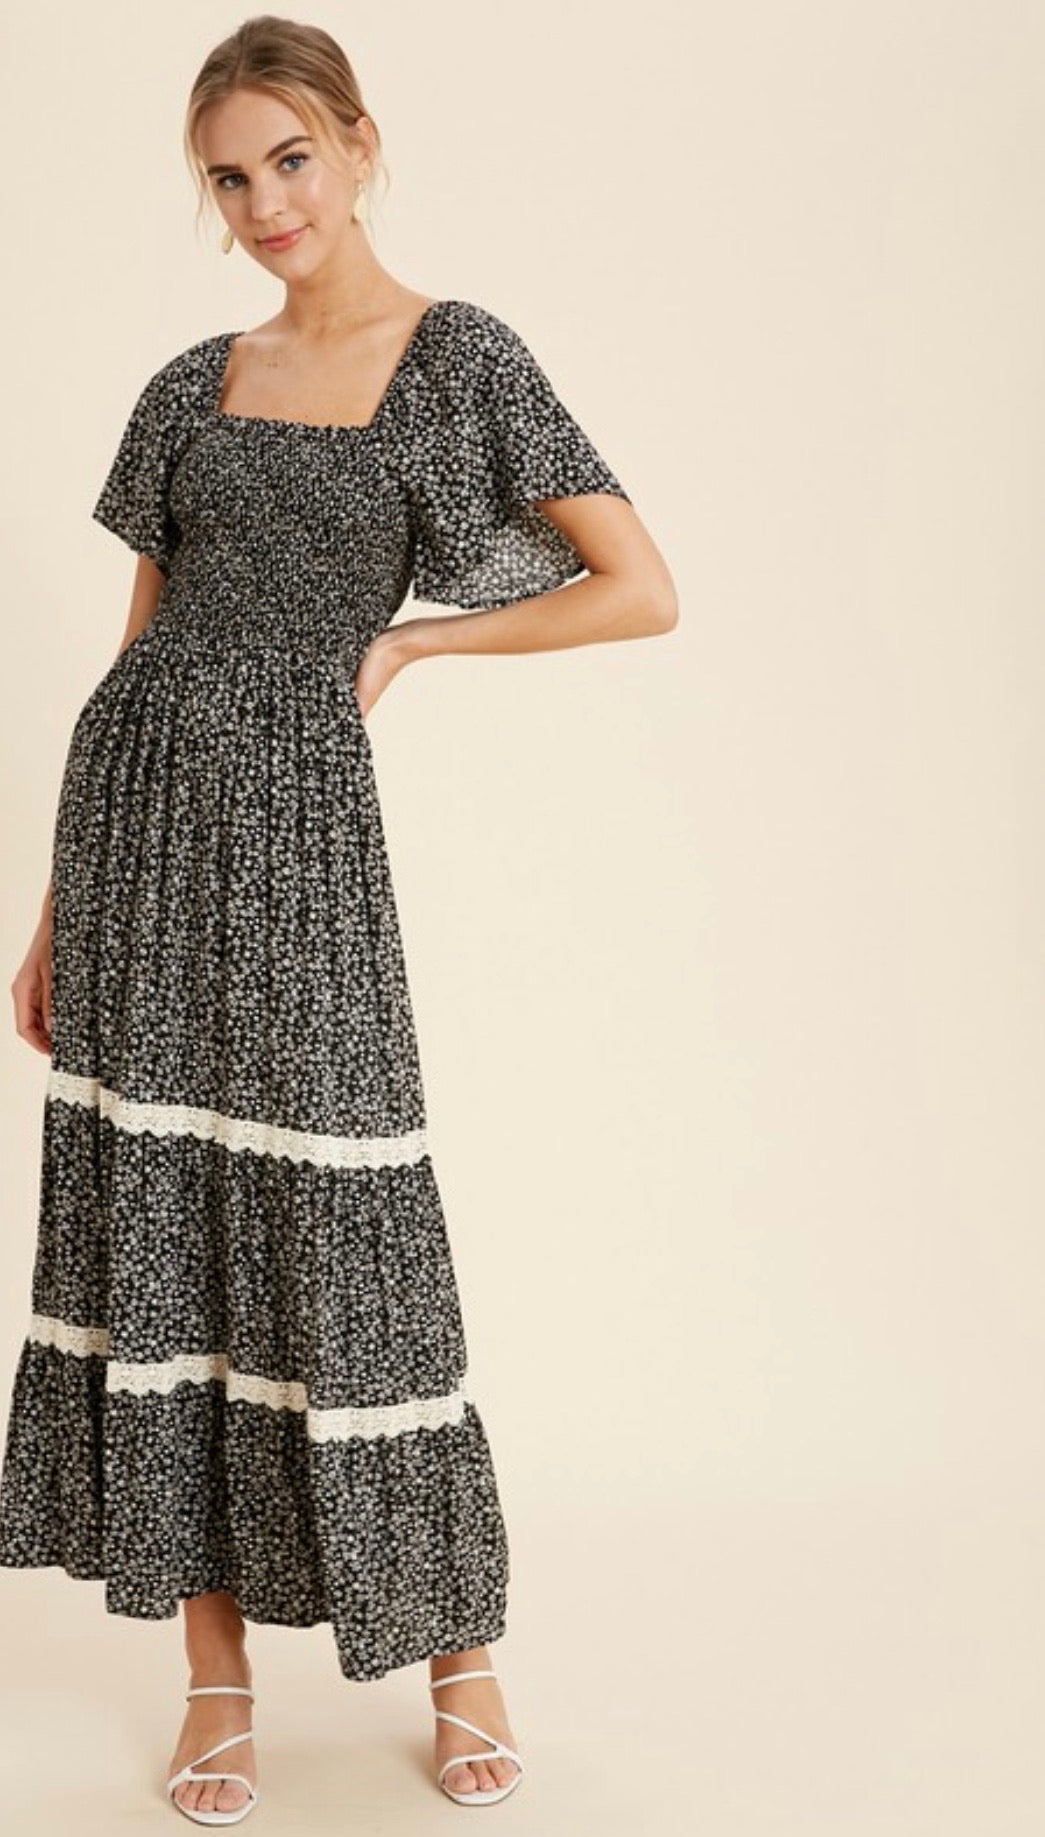 The When in Rome Dress in black and Ivory